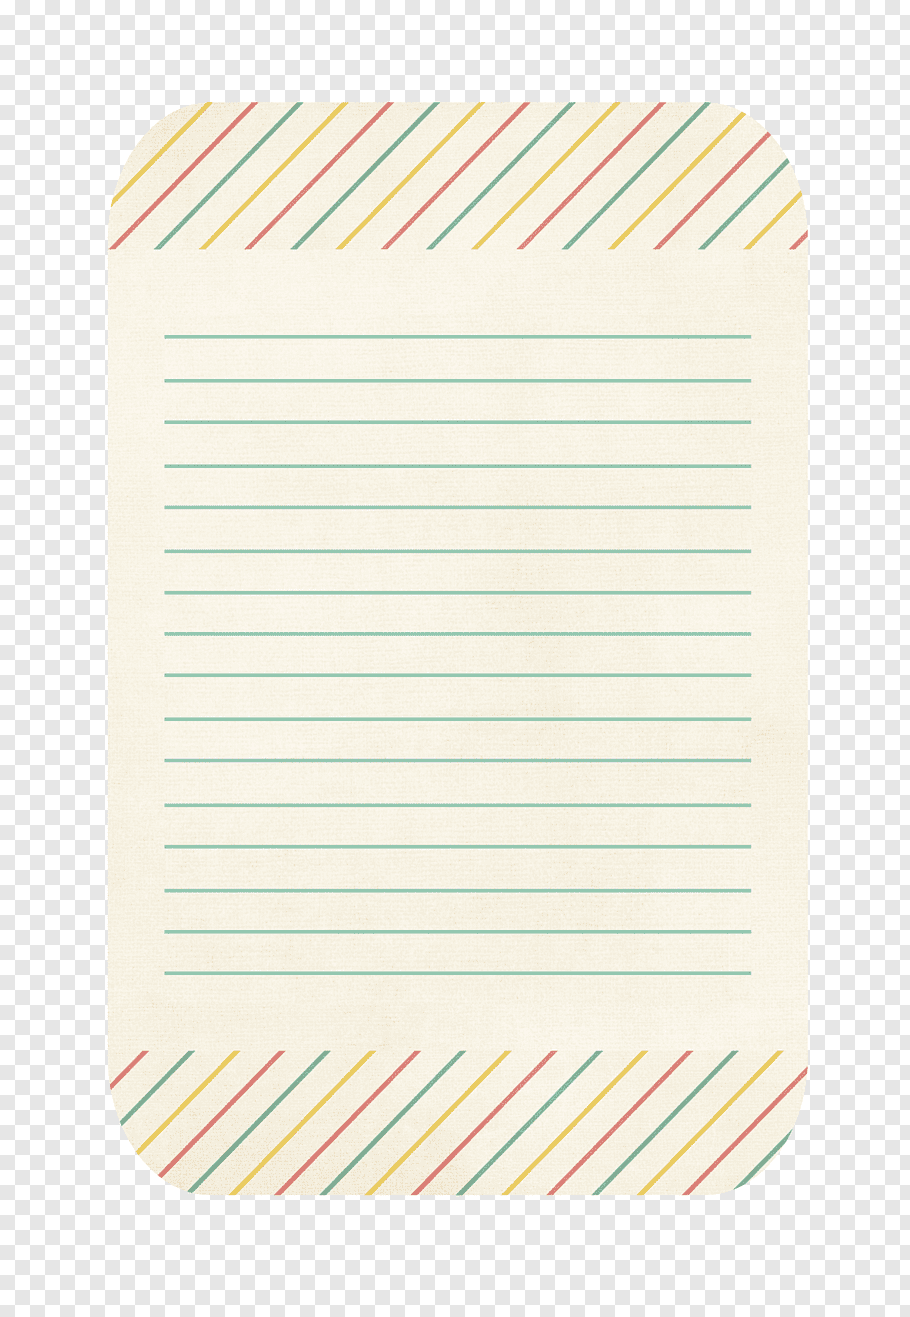 Candy Girl Journal Cards Green Lined Paper Png Journal Cards Lined Paper Paper Illustration